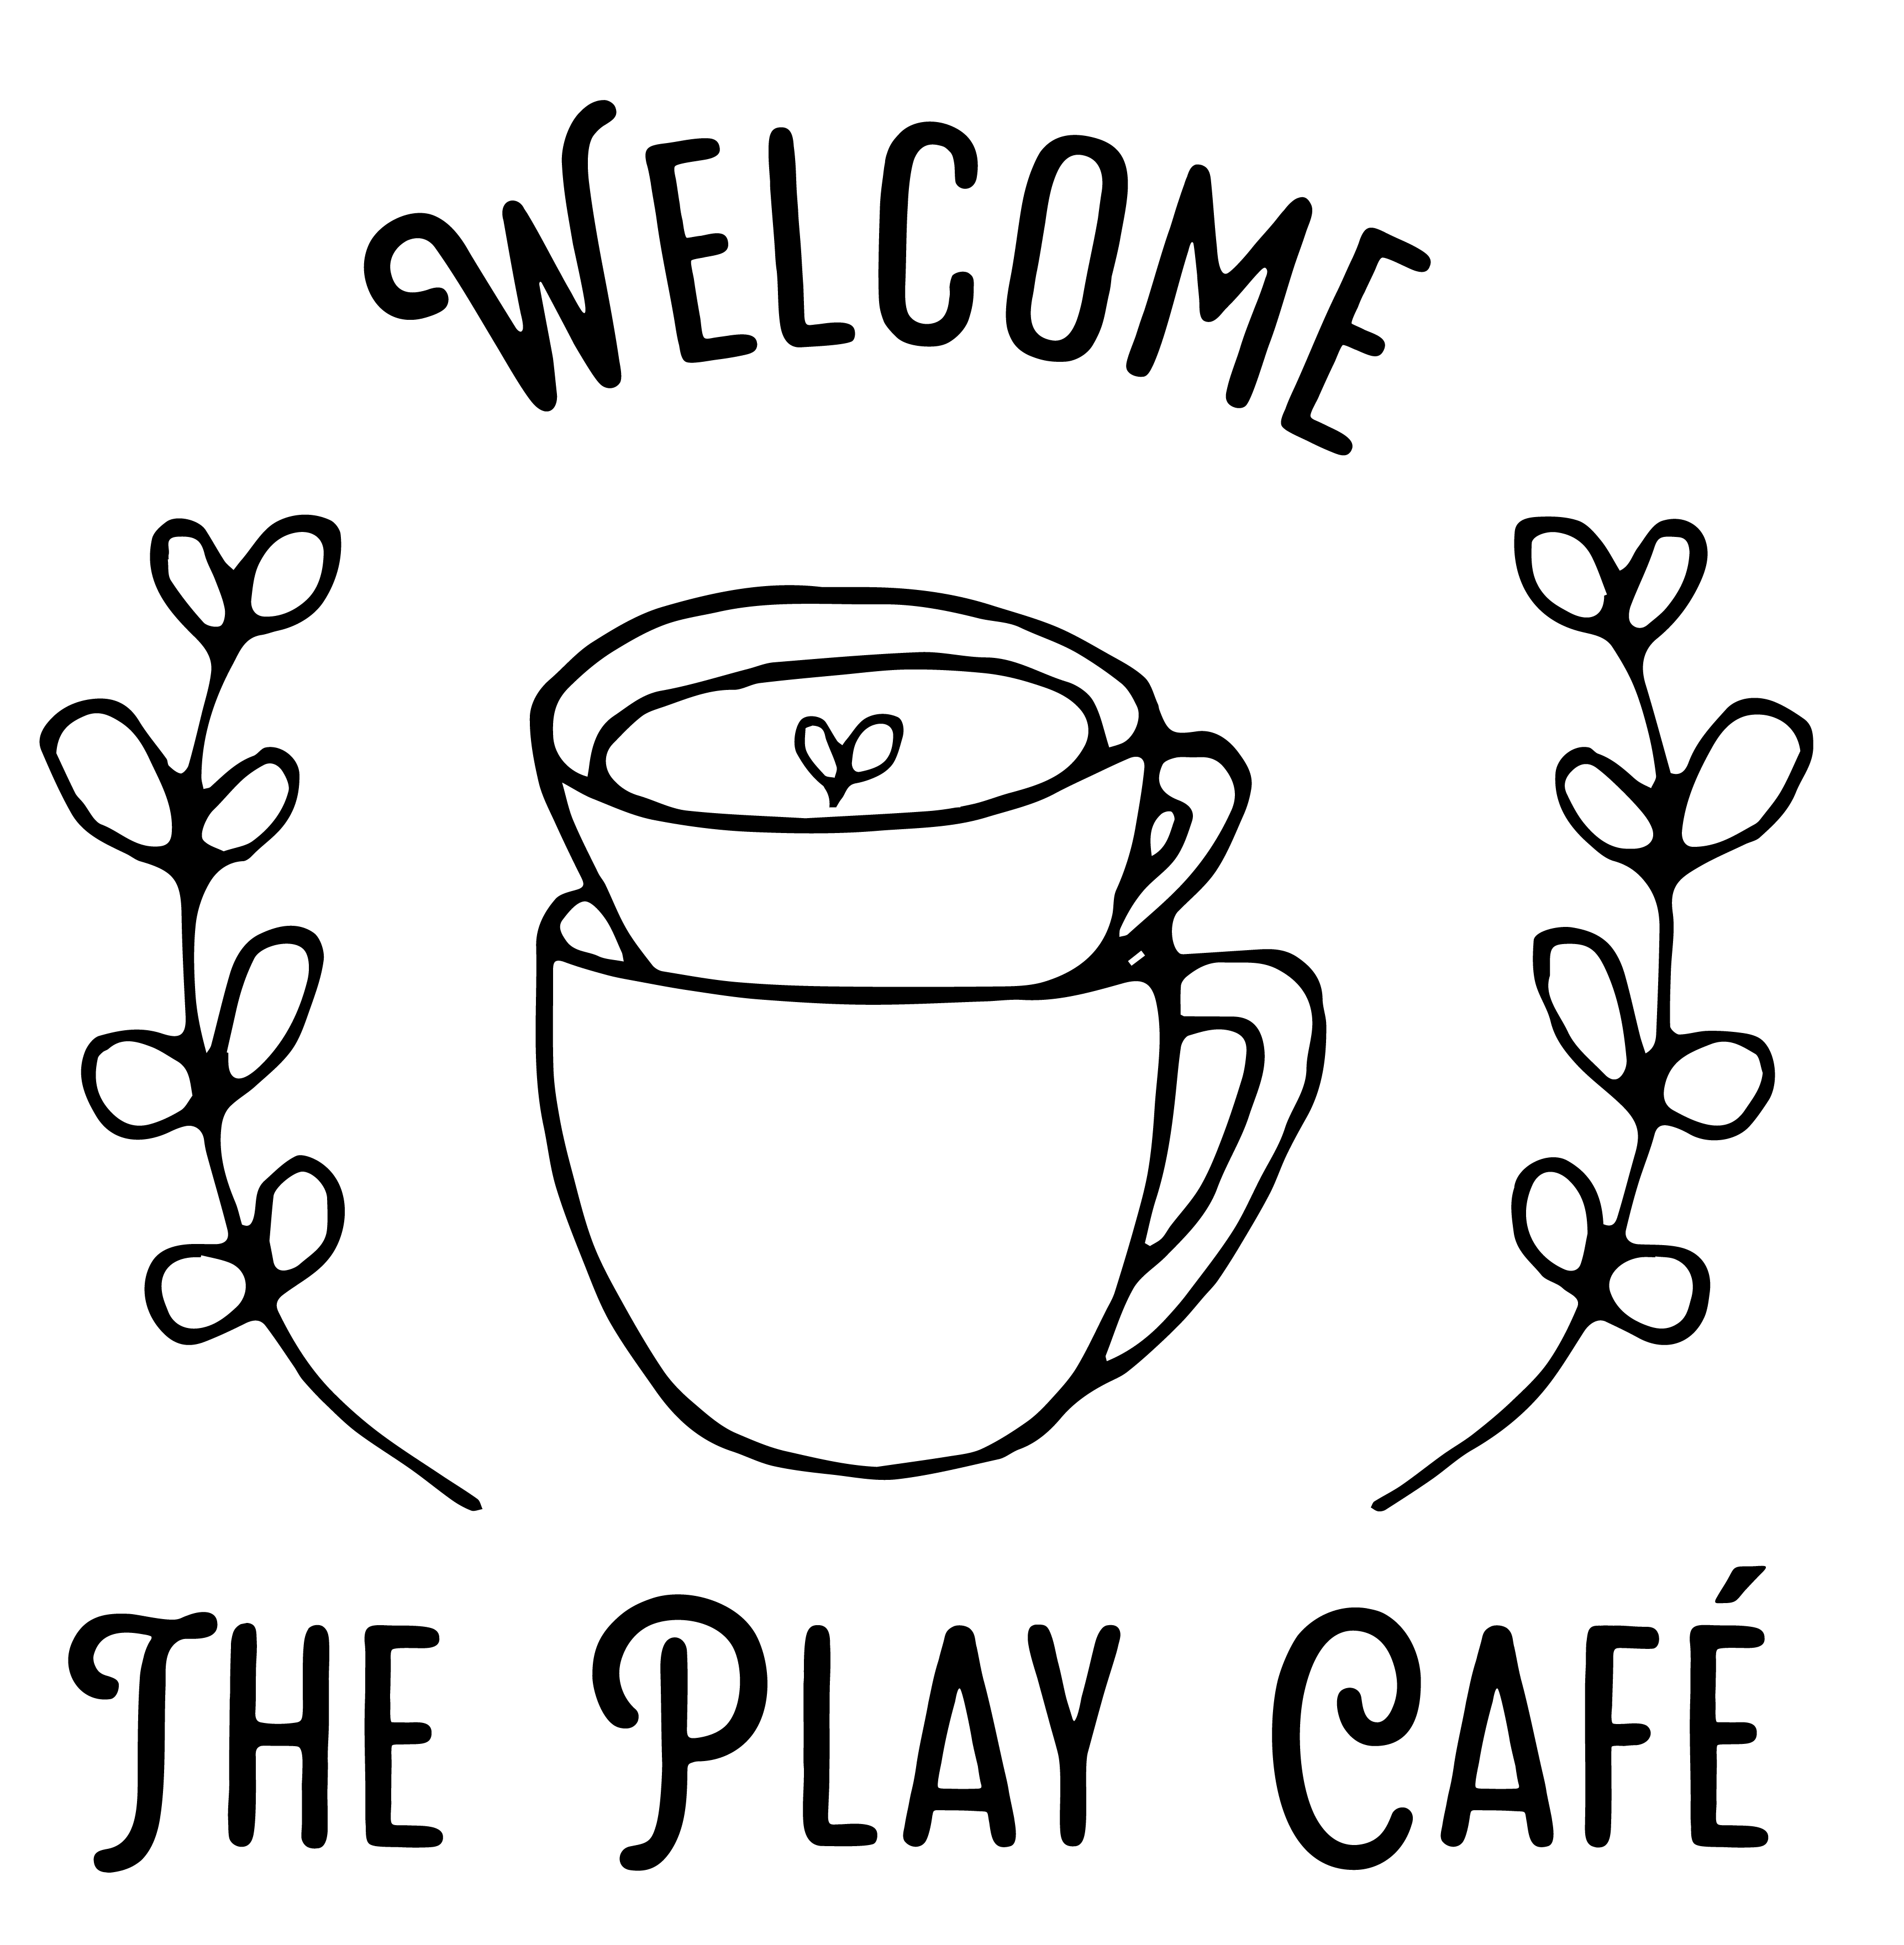 Toys for kids logo  The Play Cafe  Logos Toys and Plays